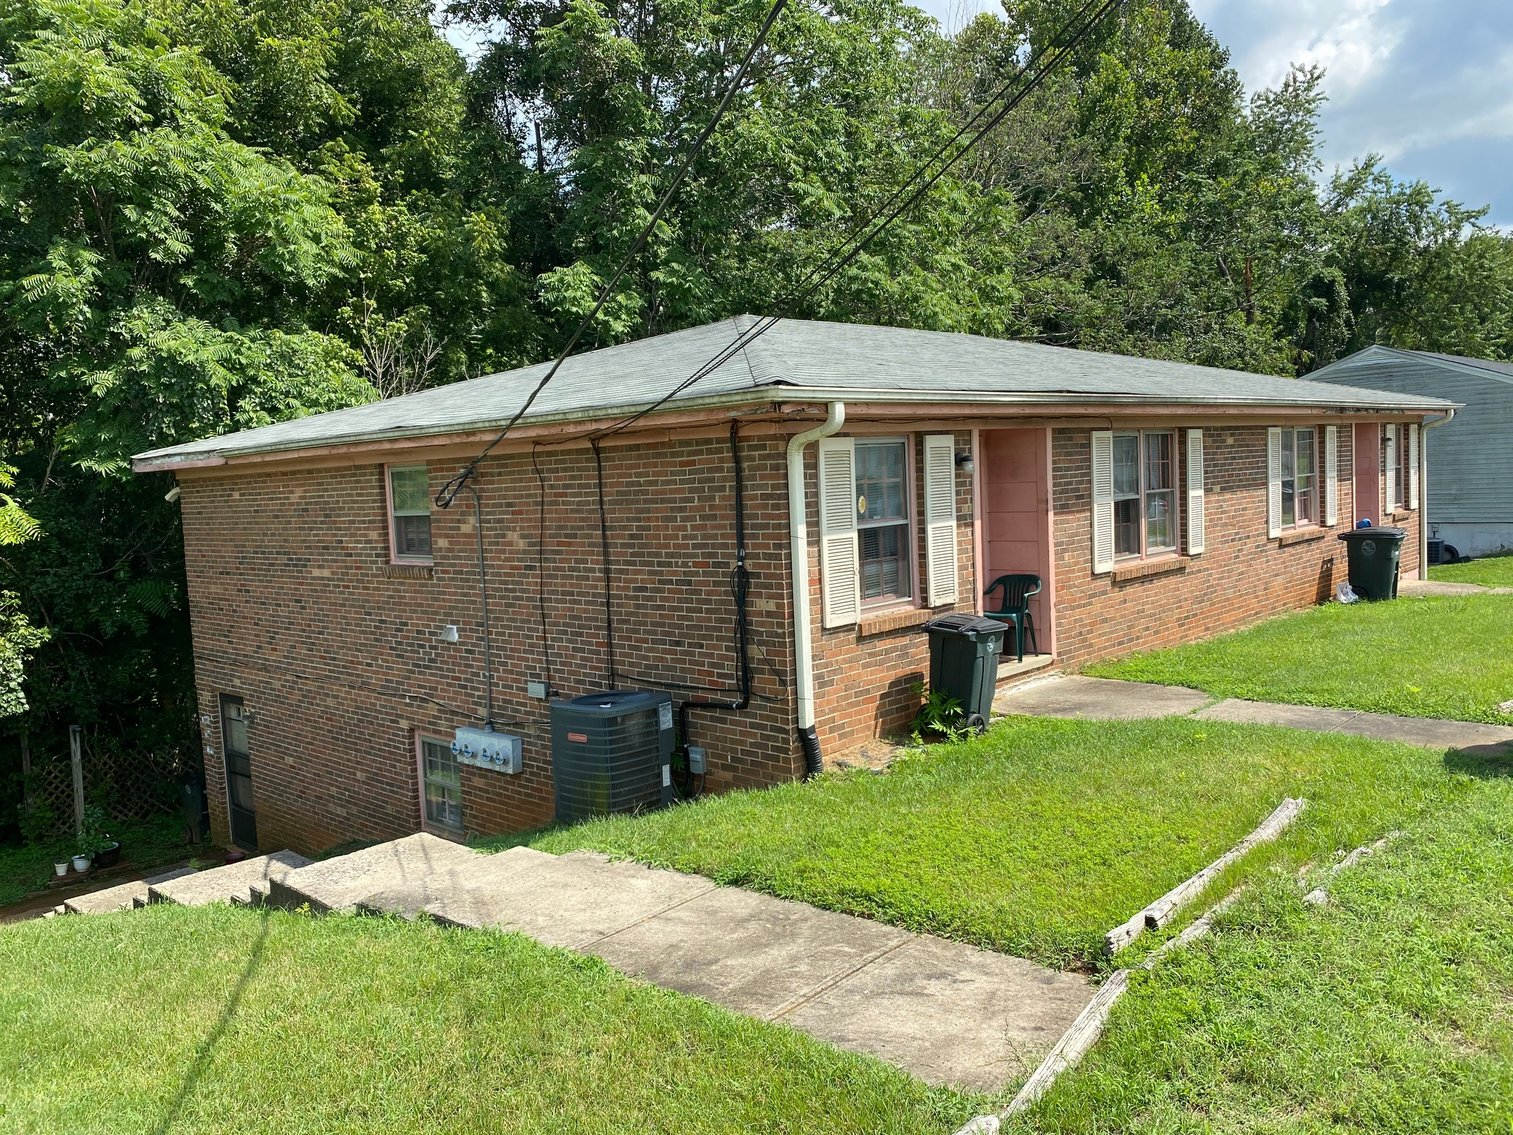 Image for ABSOLUTE REAL ESTATE AUCTION: 4 Plex on 0.49 Acres (Lynchburg, VA)